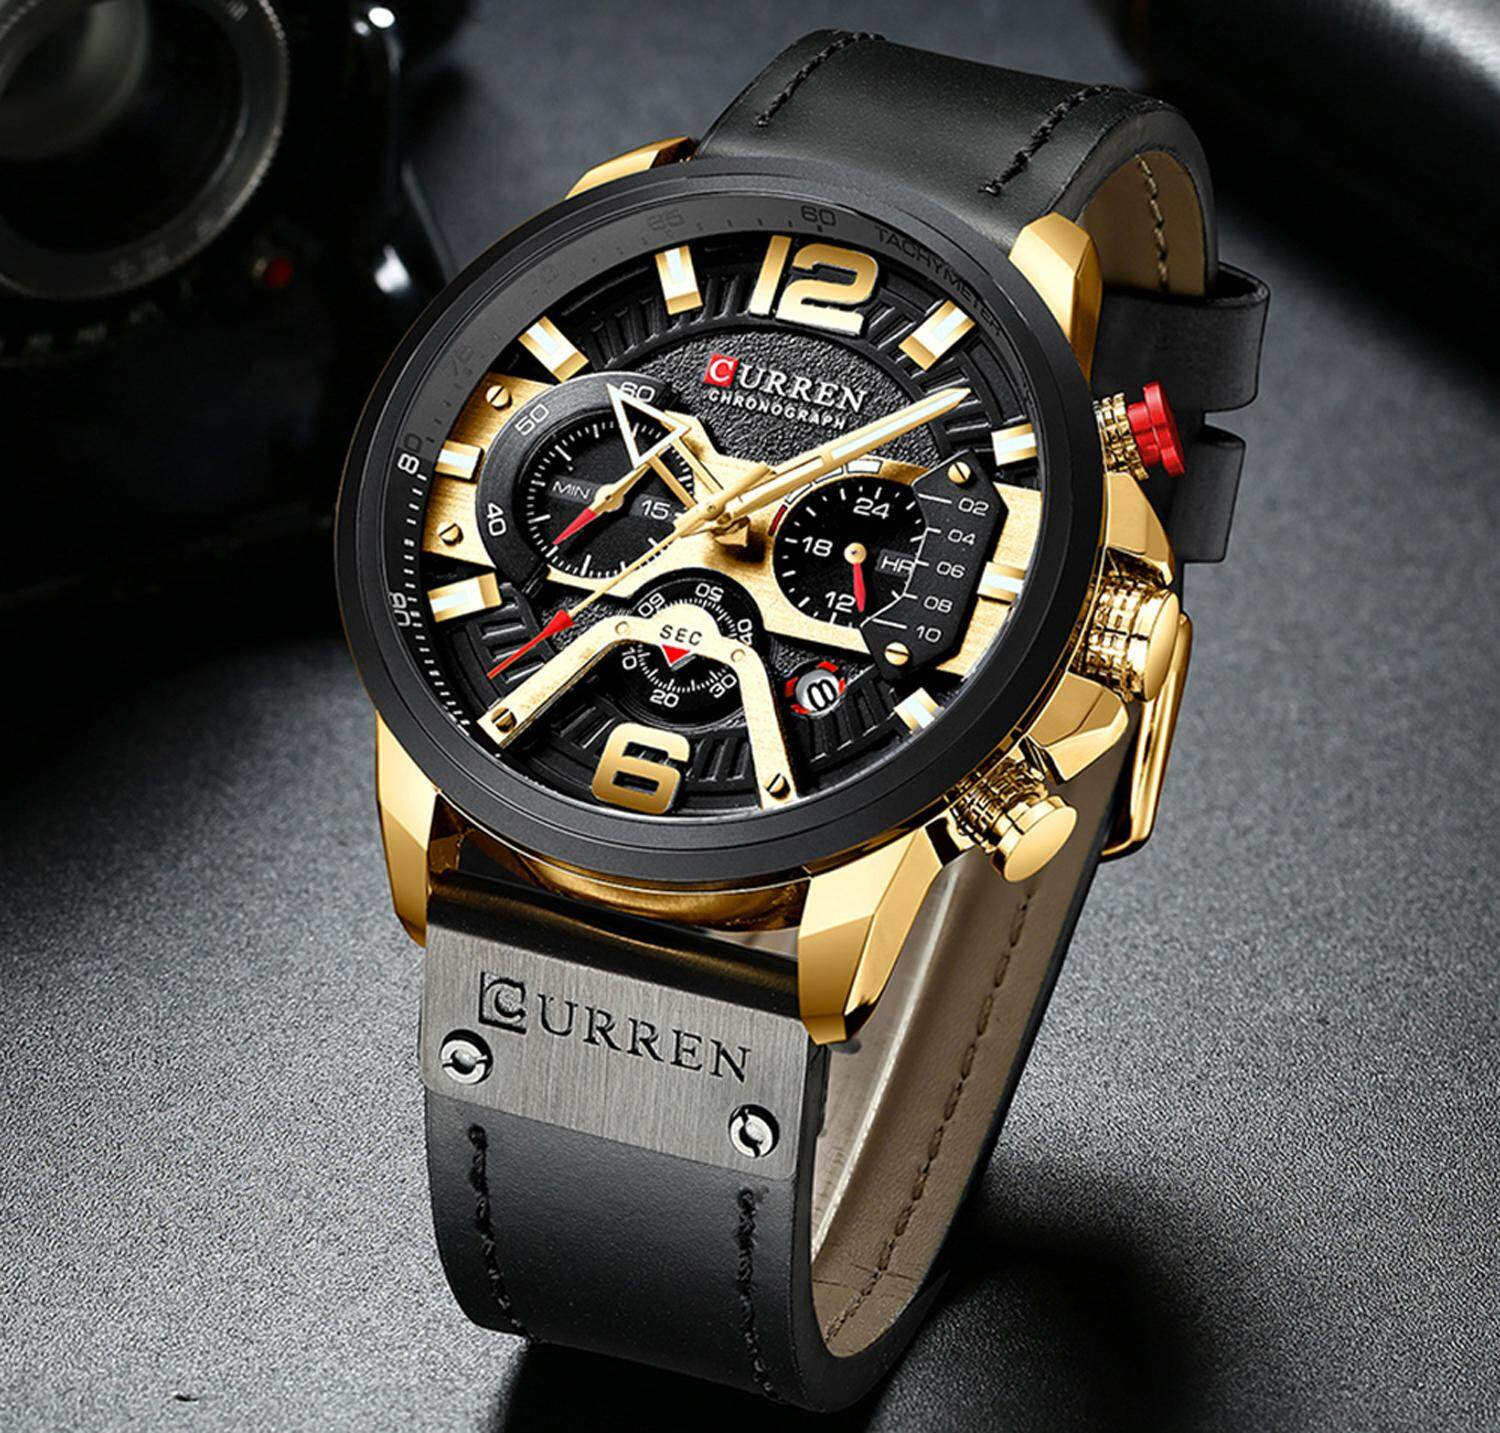 CURREN Men Watches Quartz Watch For Man Leather Strap Japanese Movement Chronograph Calendar Date Waterproof Shockproof 8329 Malaysia